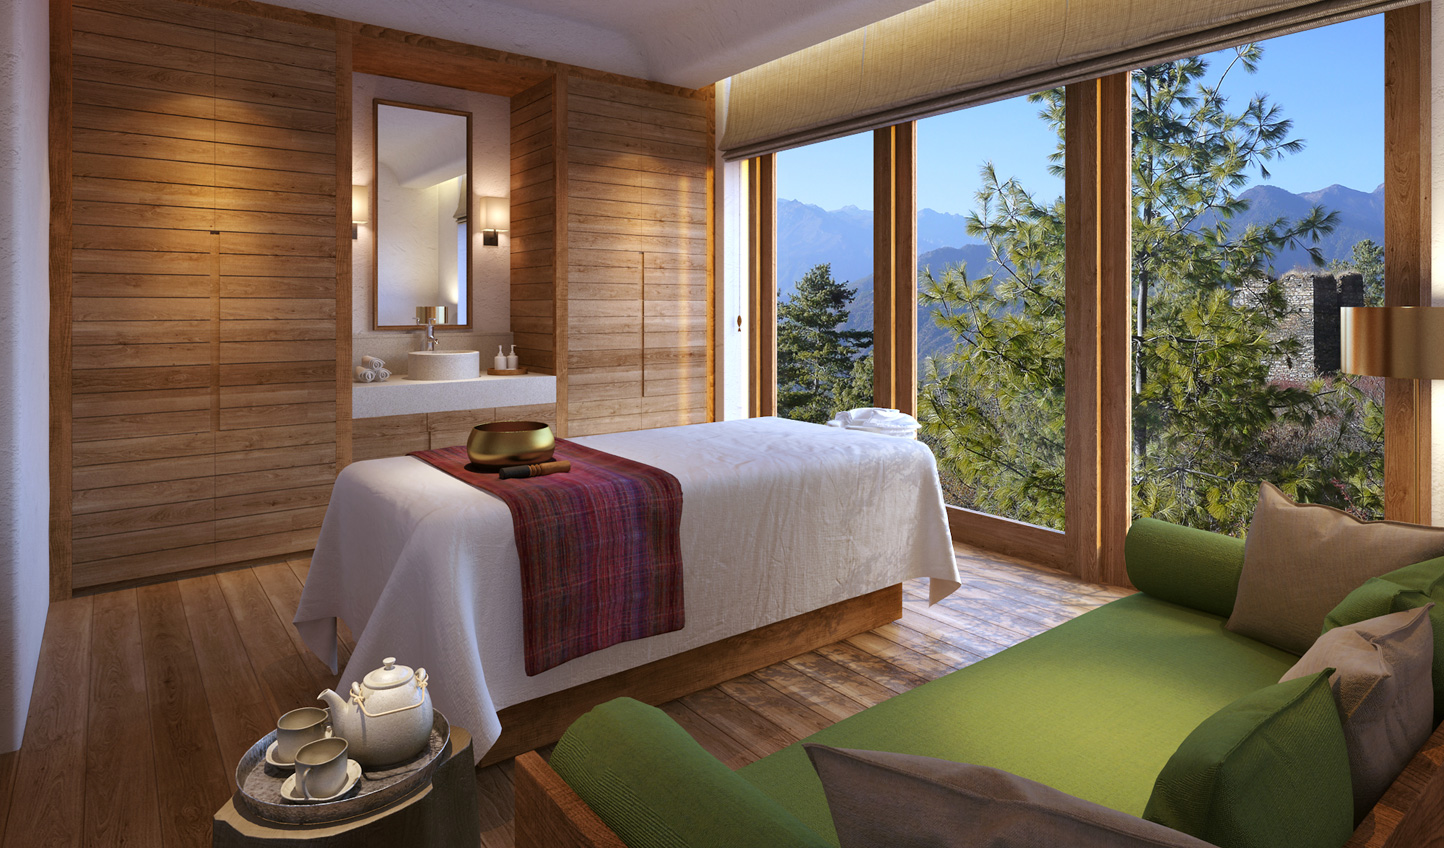 Rejuvenate with a soothing massage at Six Senses Paro